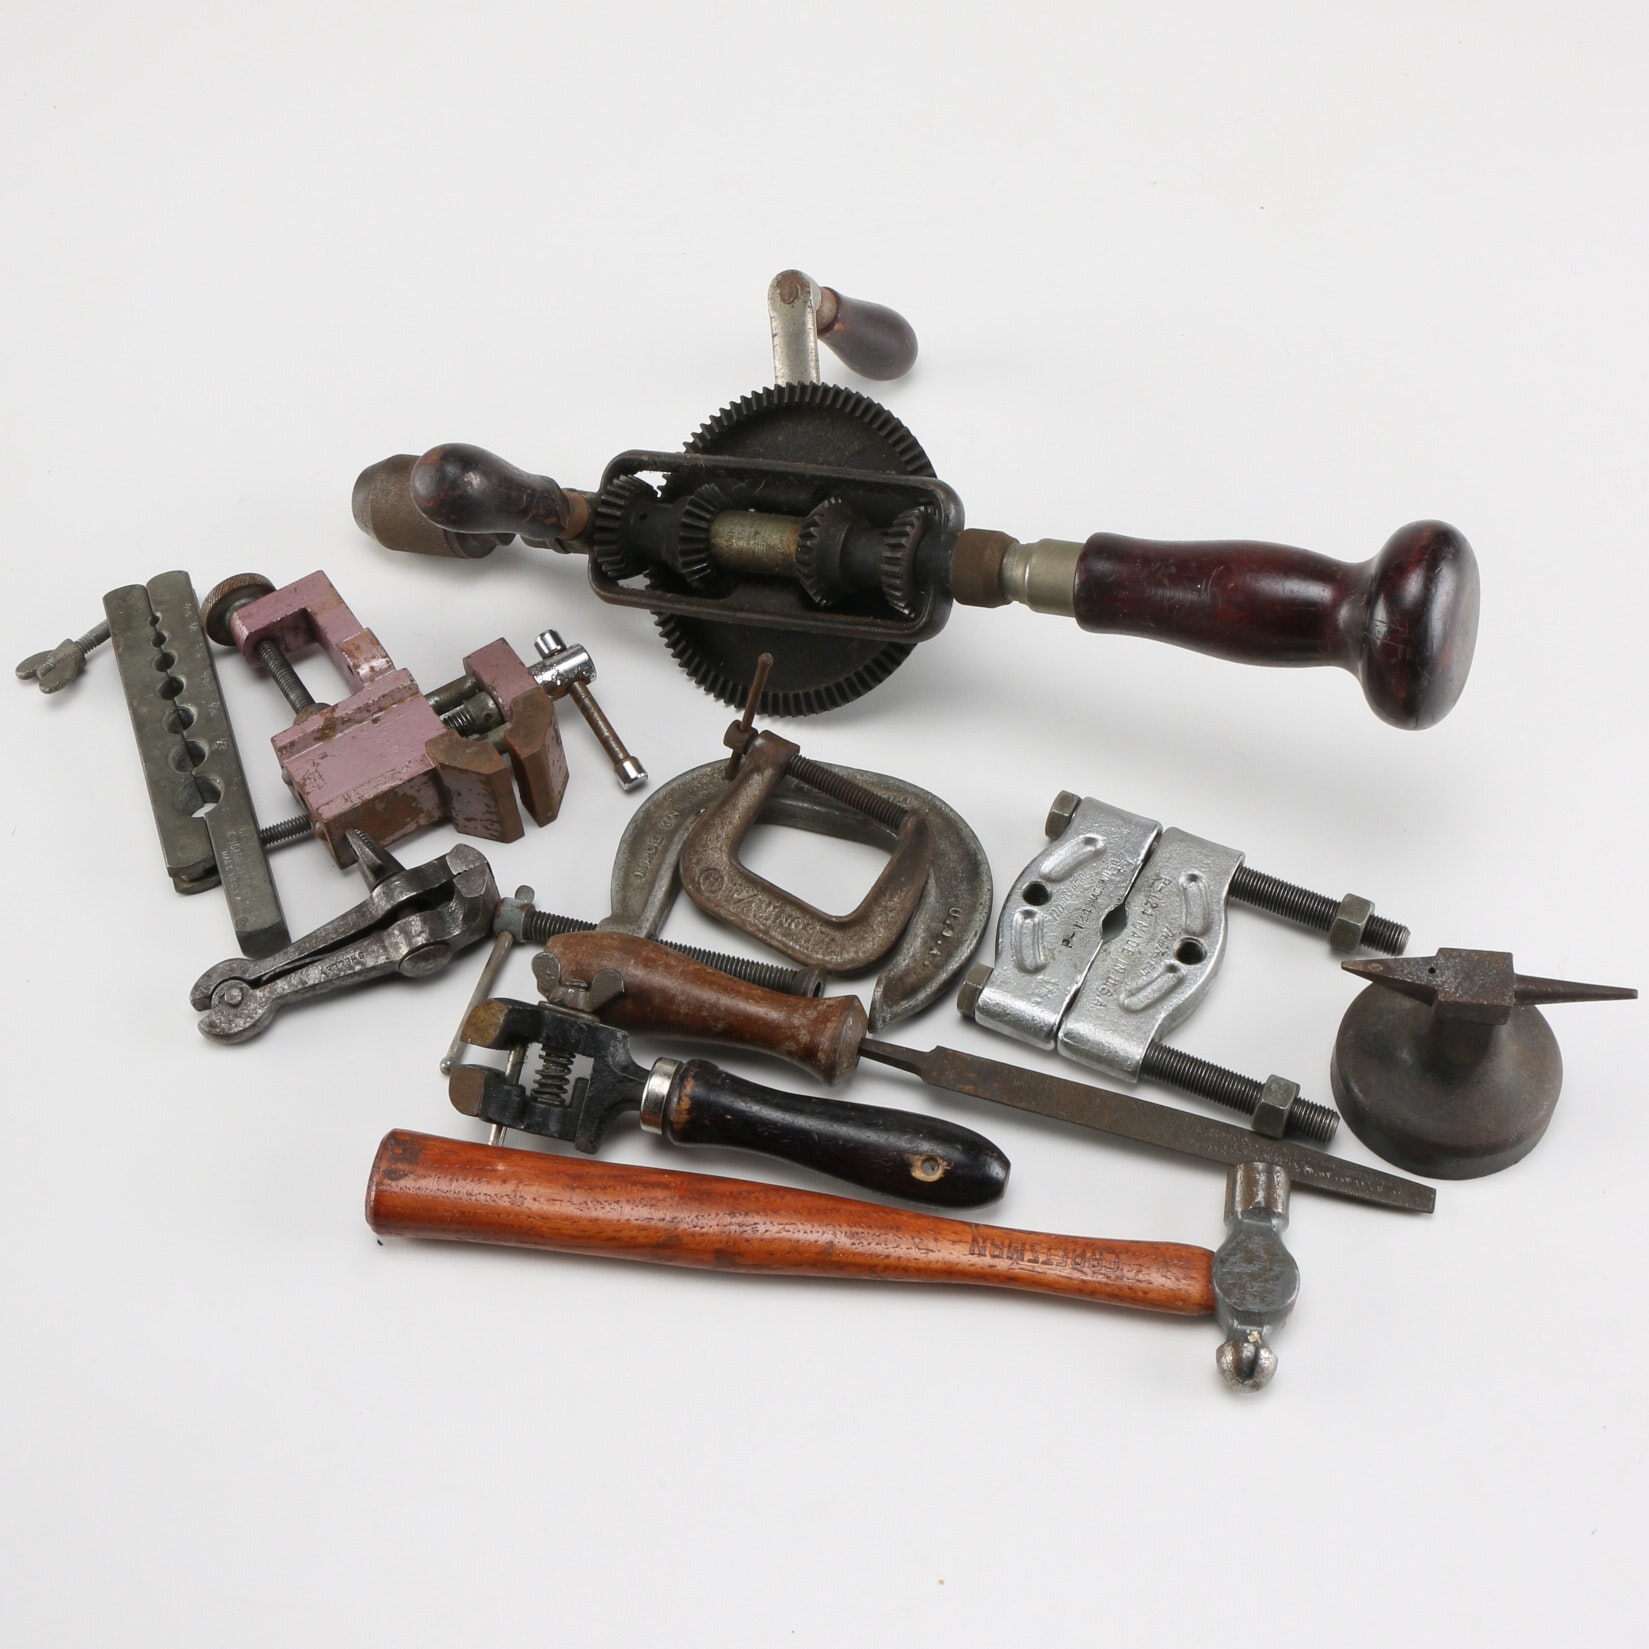 Collection of Hand Tools and Clamps